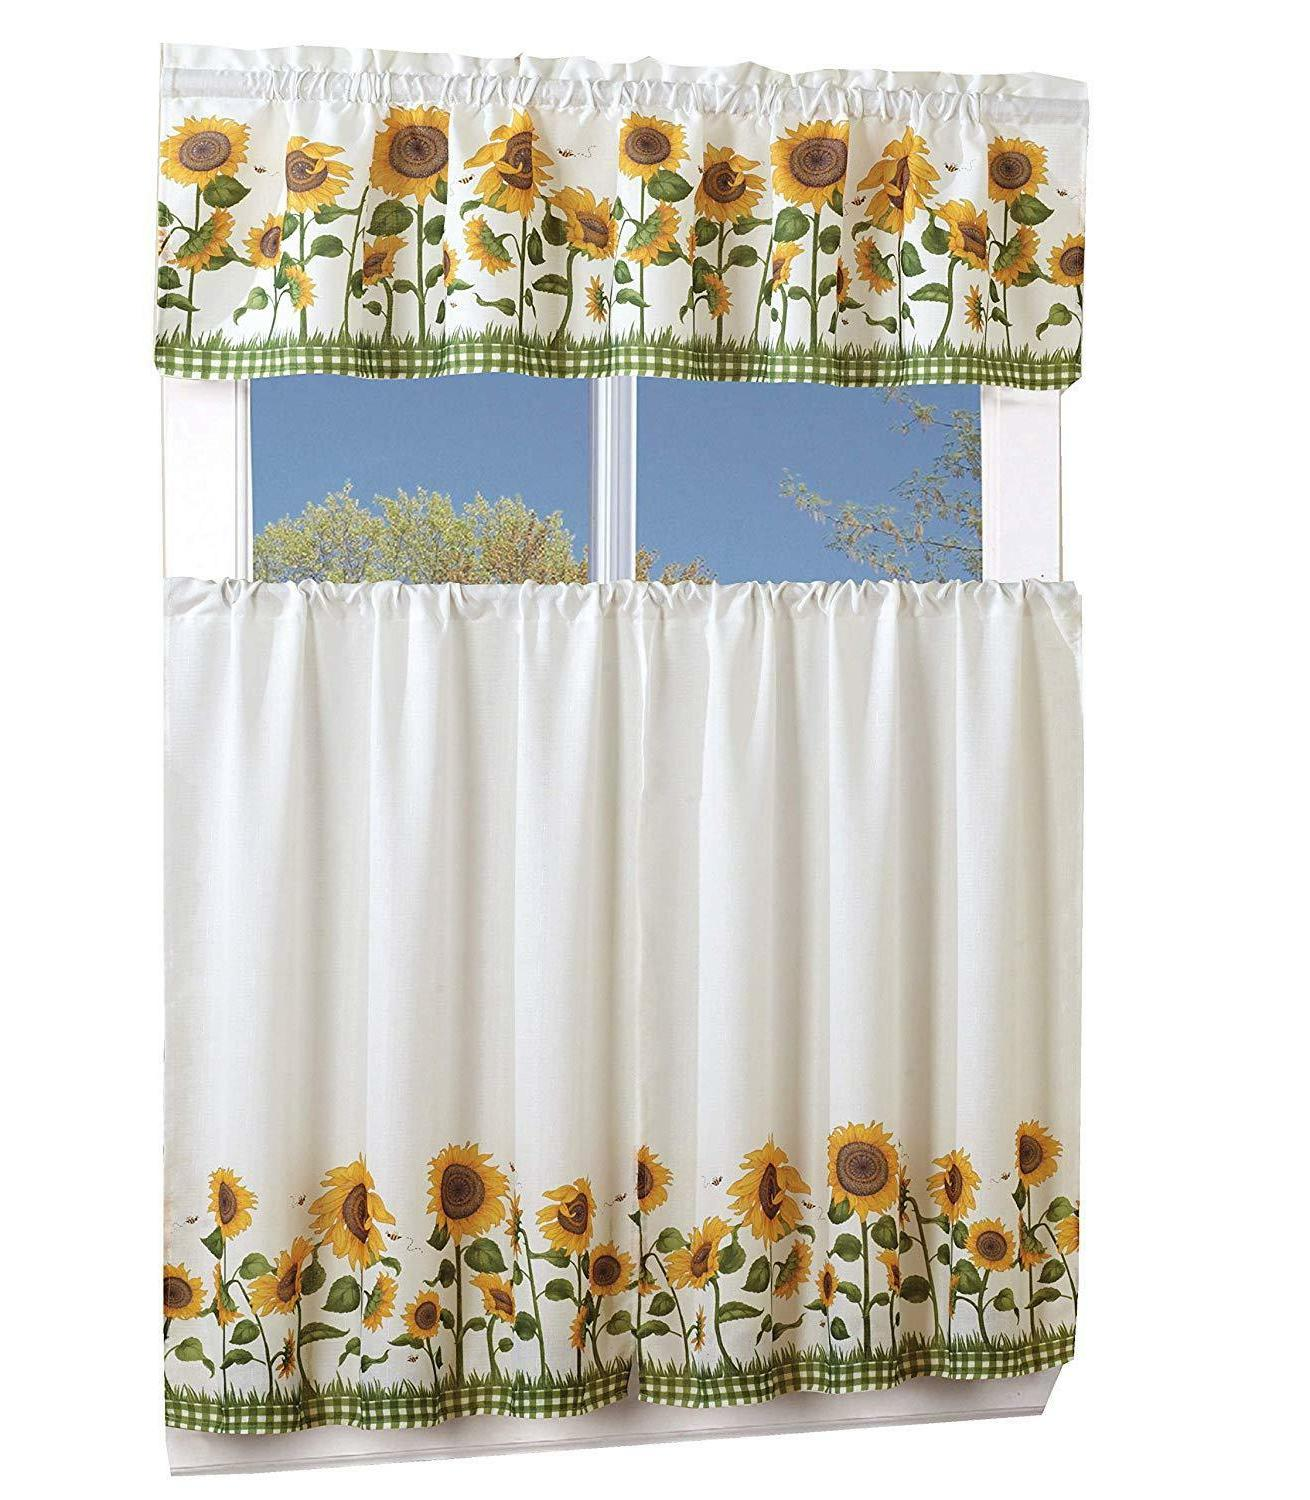 3 Piece With Window Curtain